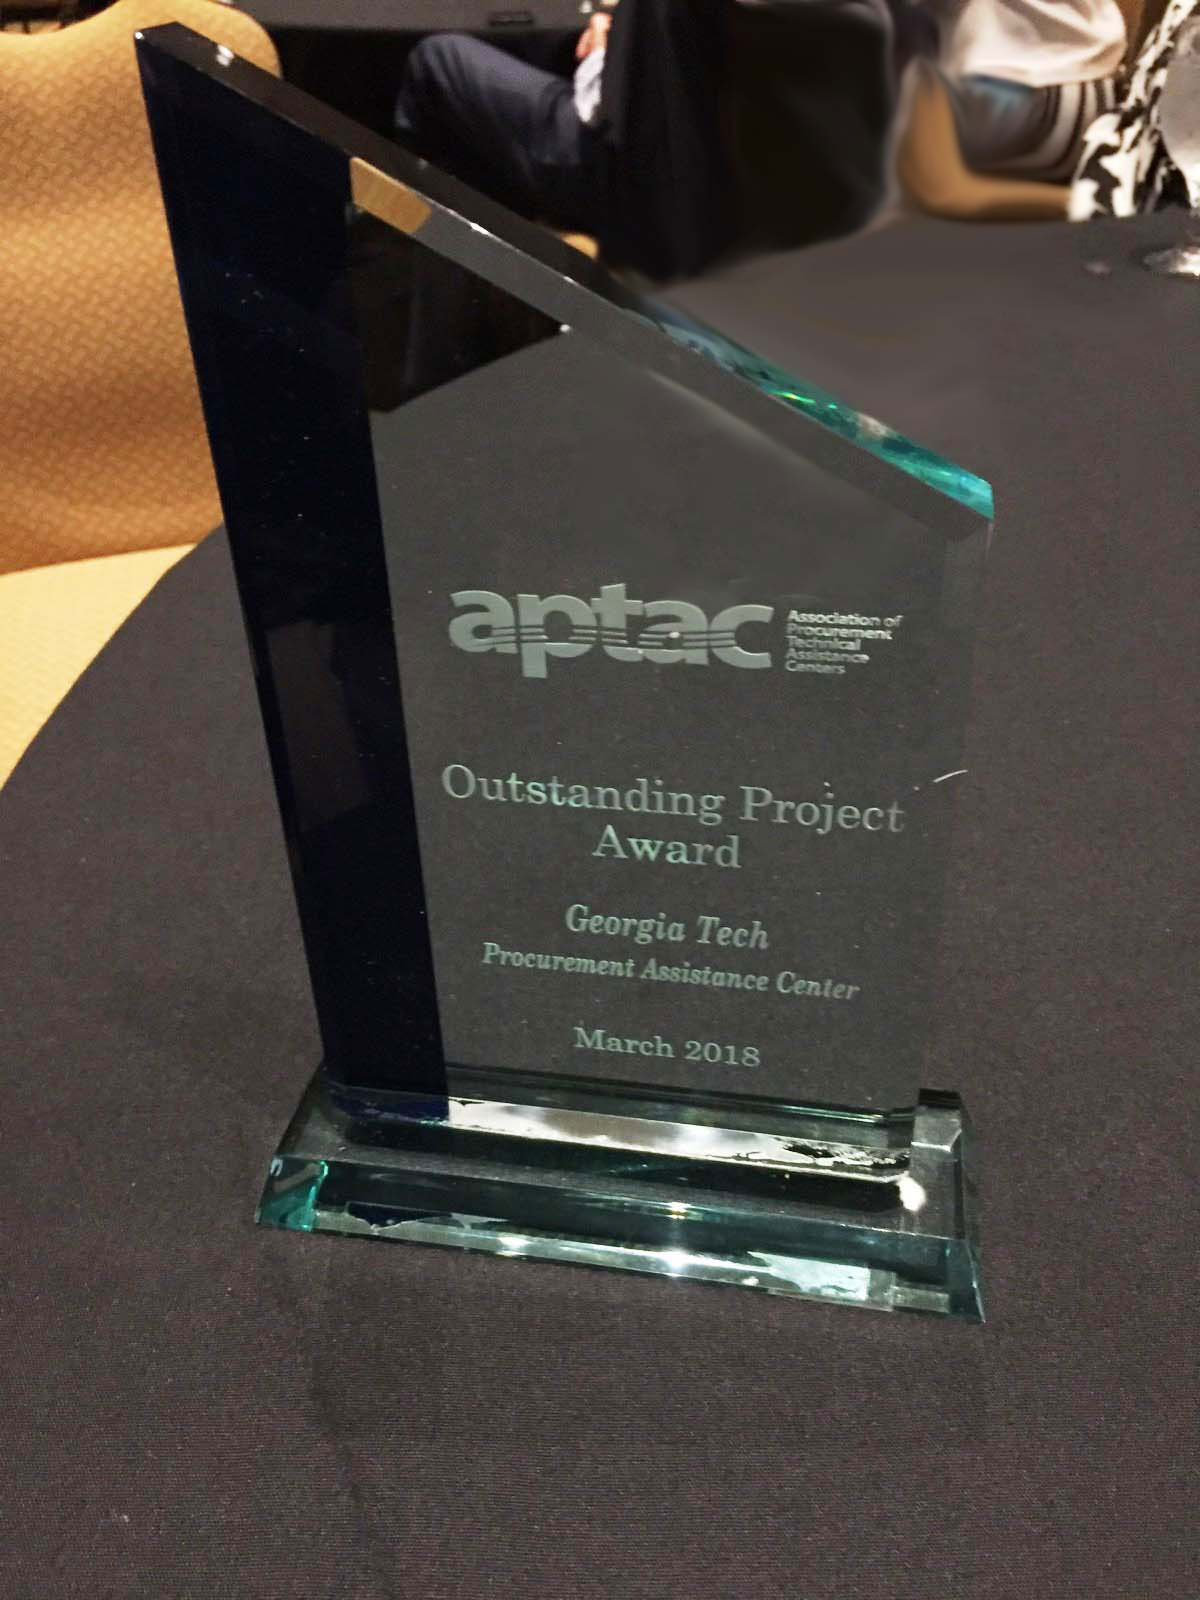 GTPAC received the Outstanding Project Award at APTAC's annual training conference on Mar. 7, 2018.